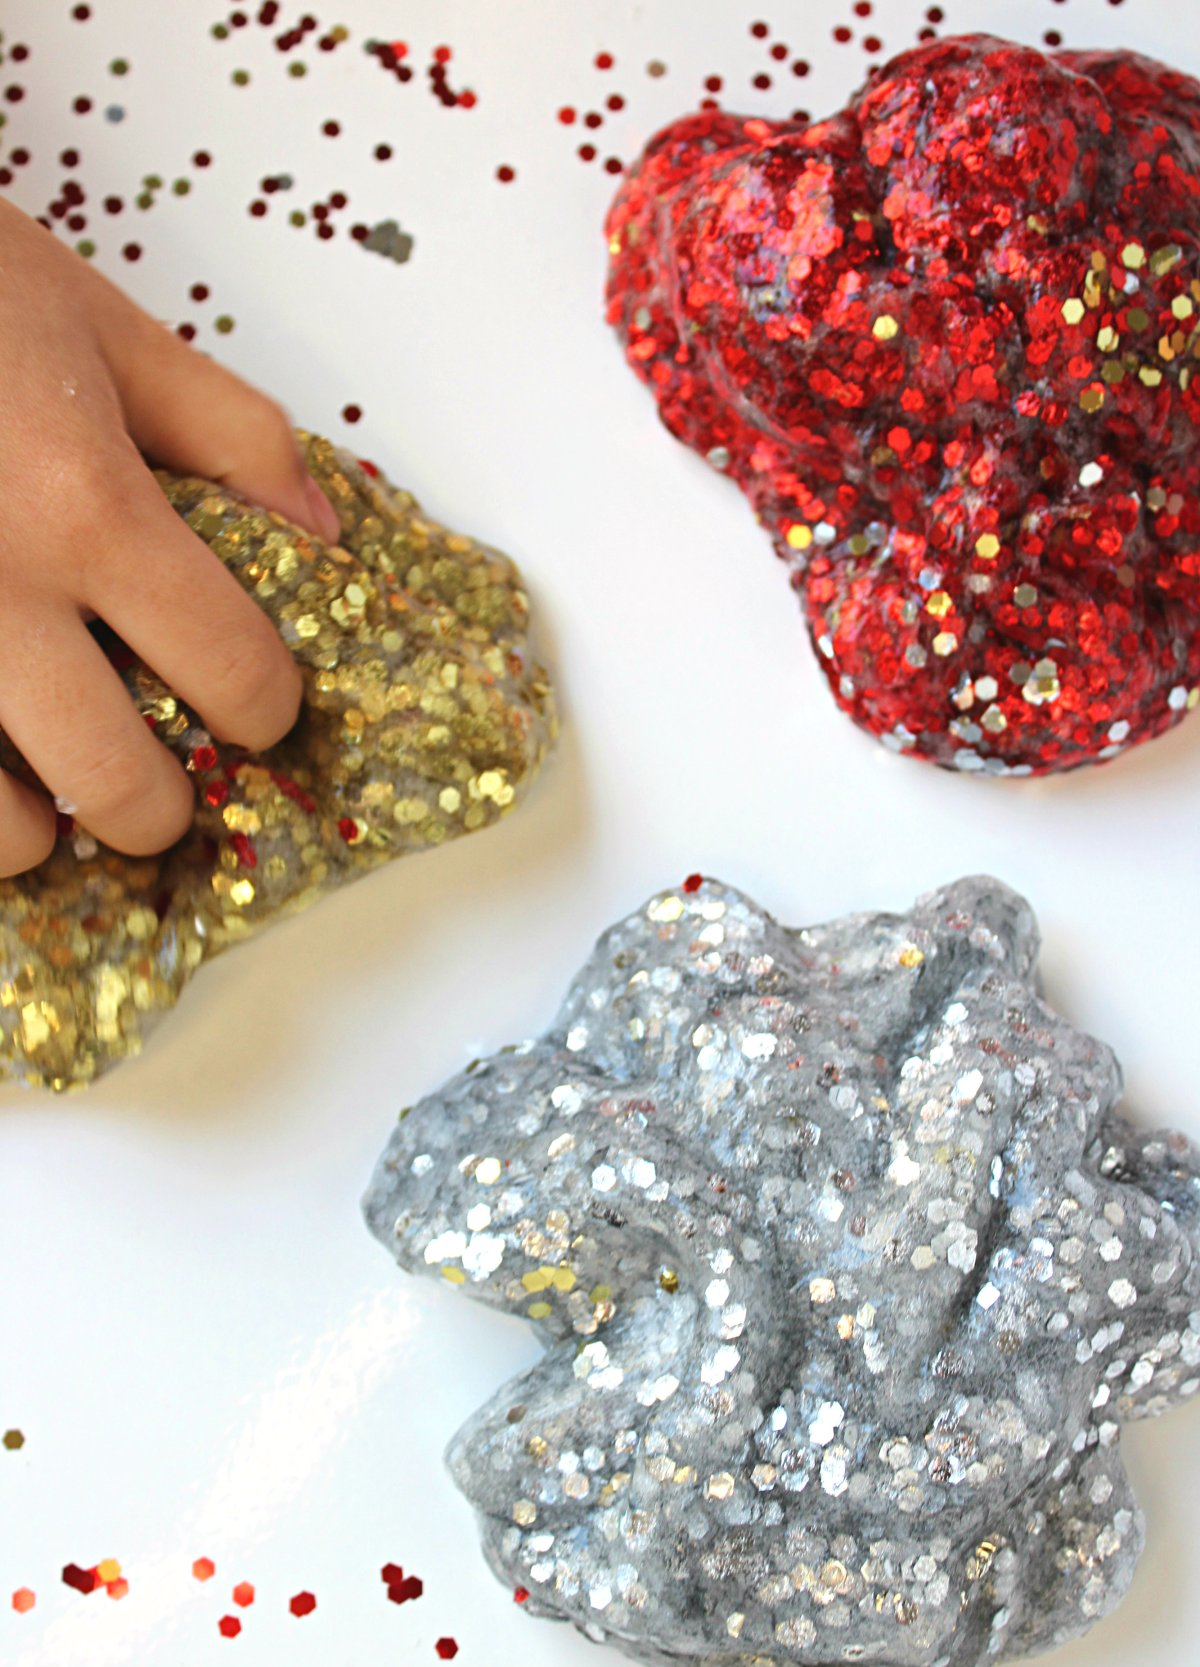 New Year's Party Clear Glitter Slime made with contact lens solution and baking soda.